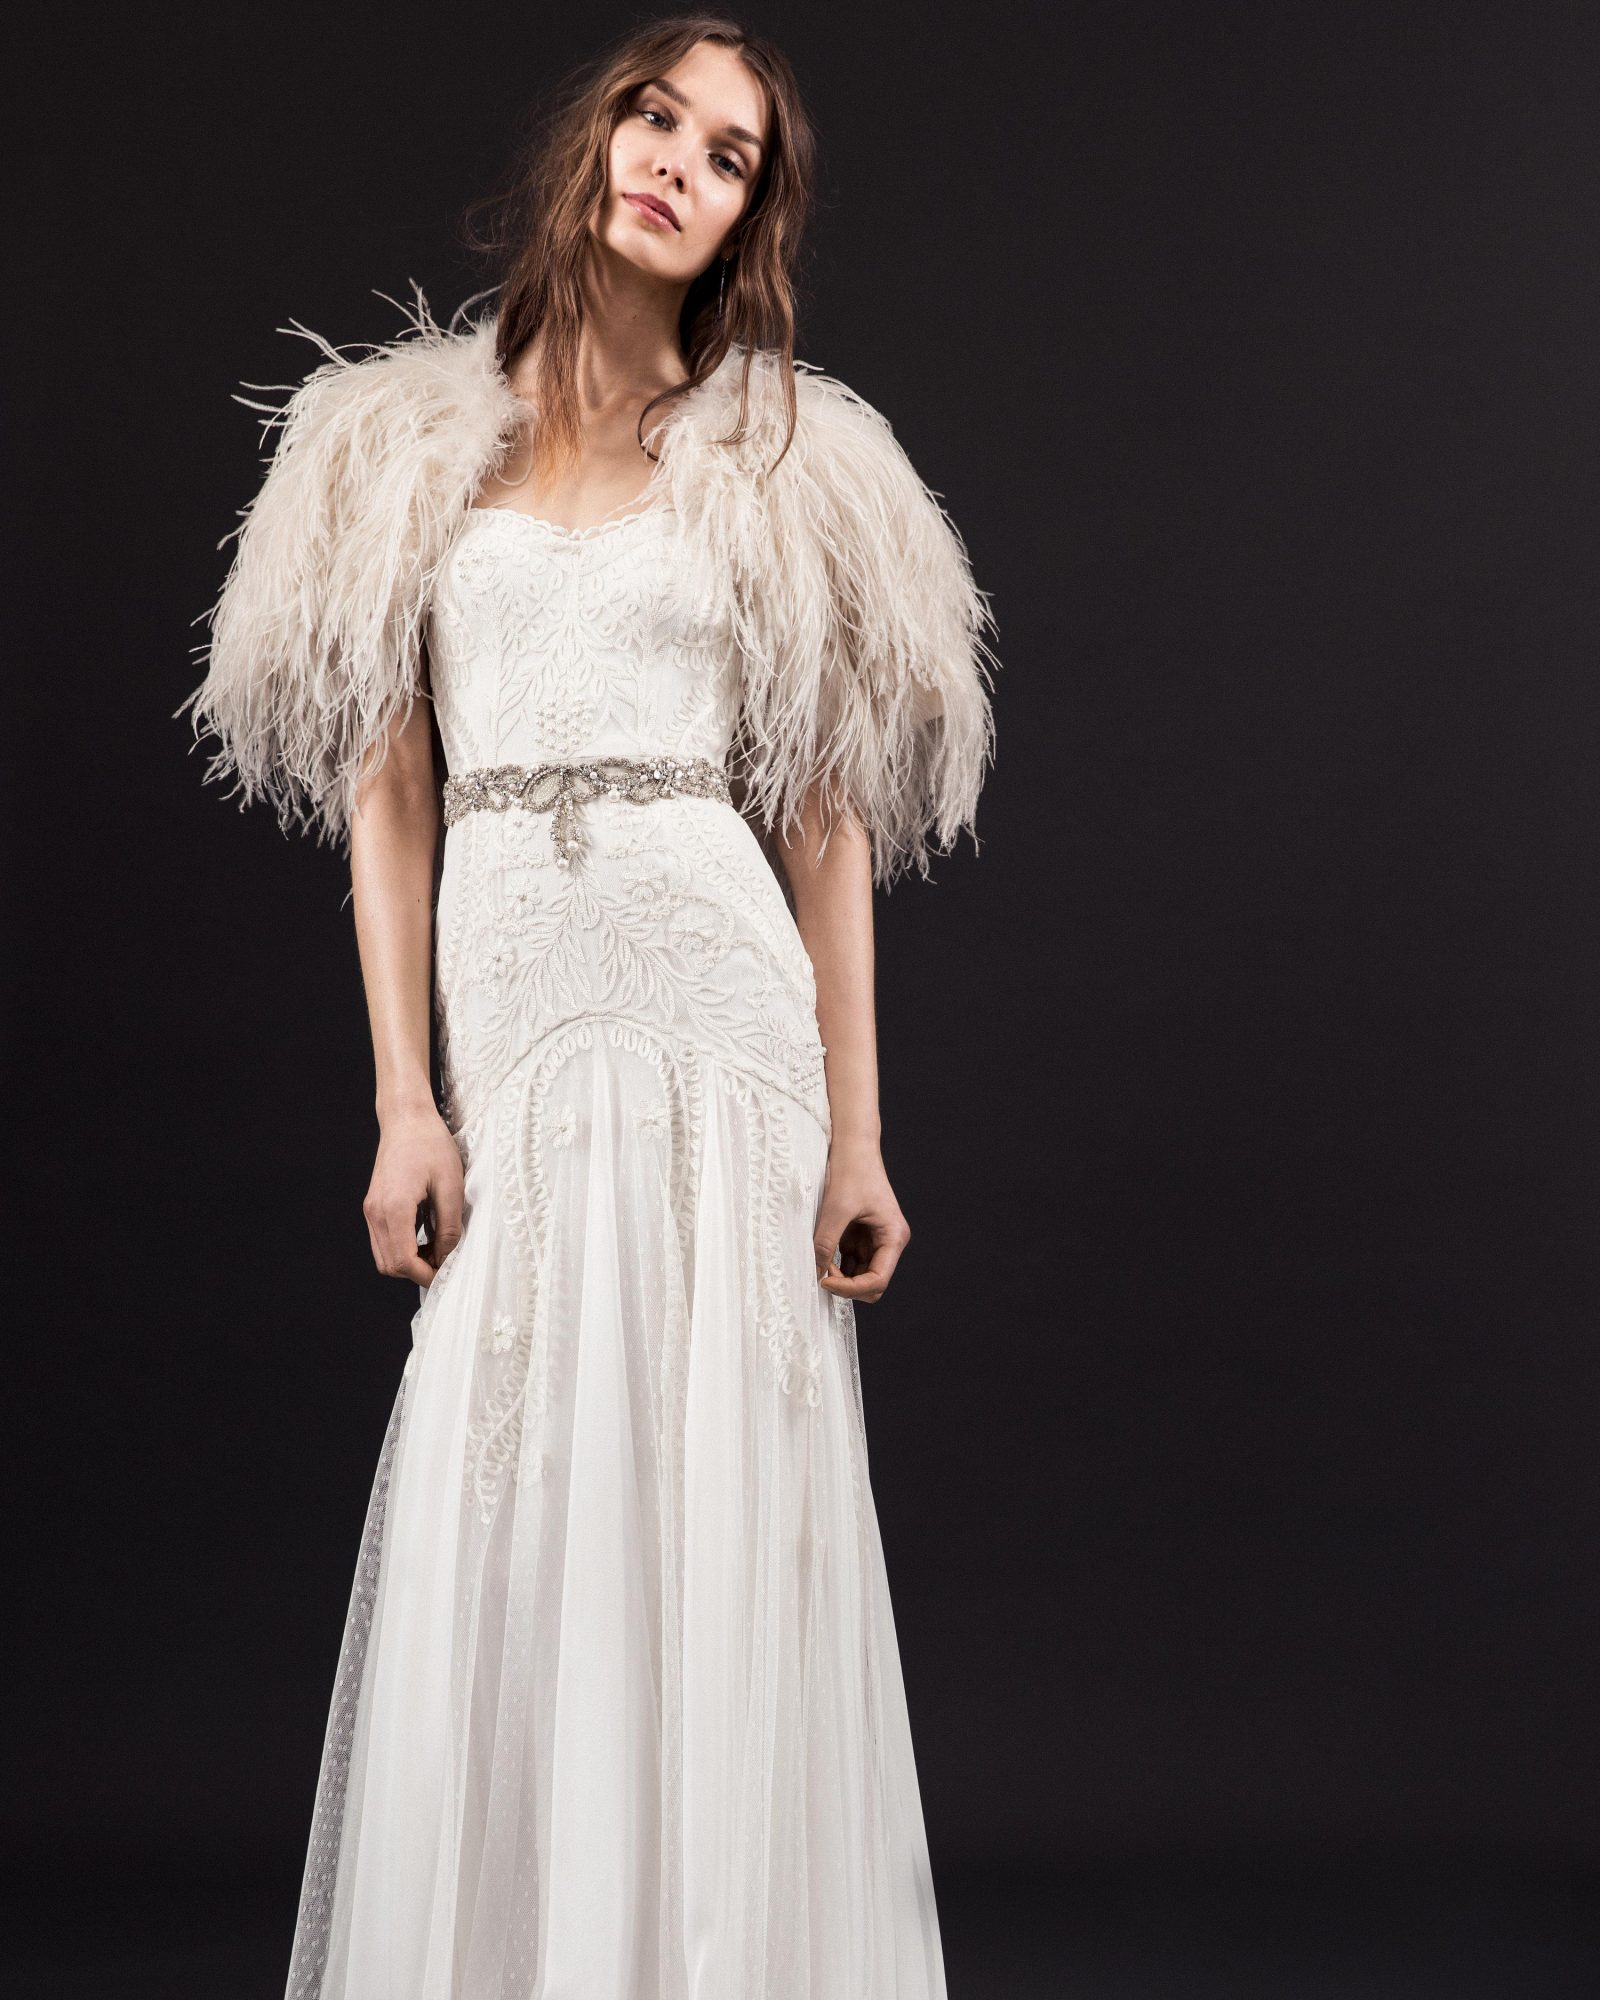 temperley-london-lucie-dress-feathered-cape-bridal-market-ss17-0416.jpg